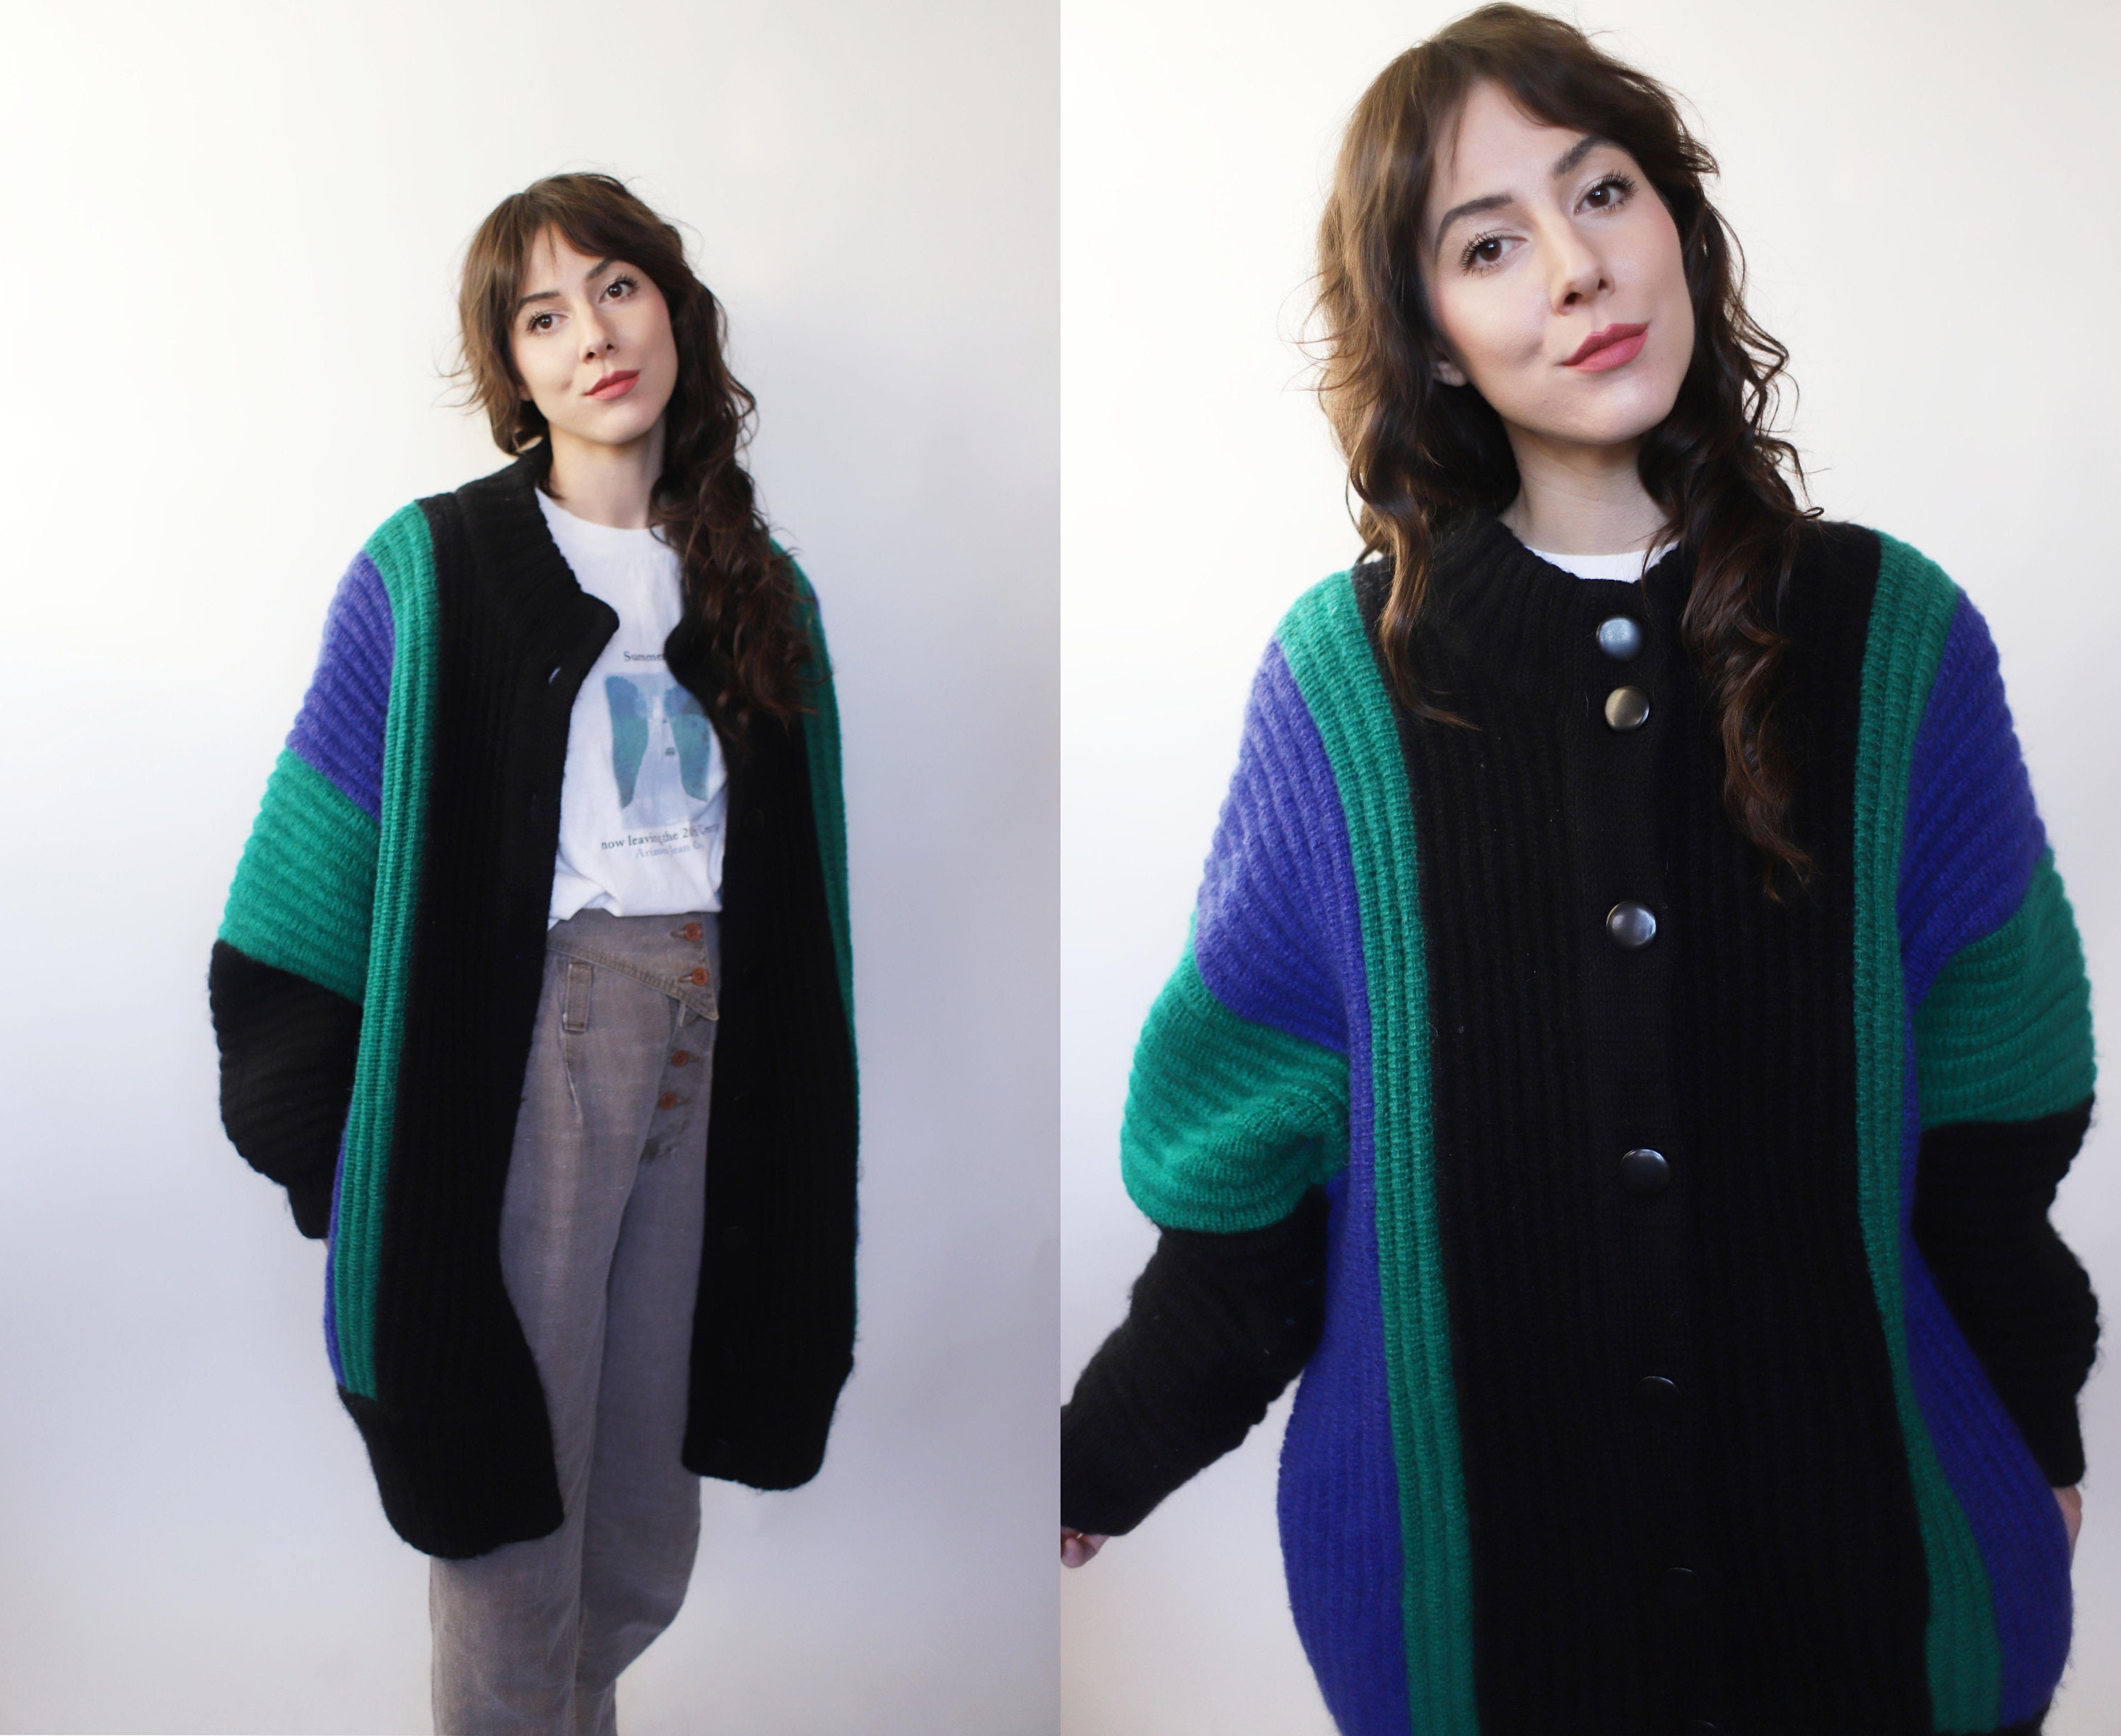 80s Dresses | Casual to Party Dresses Vintage 1980S 90S Small Medium Oversized Cardigan Sweater Jumper - Black Blue Green Chunky Knit $45.00 AT vintagedancer.com